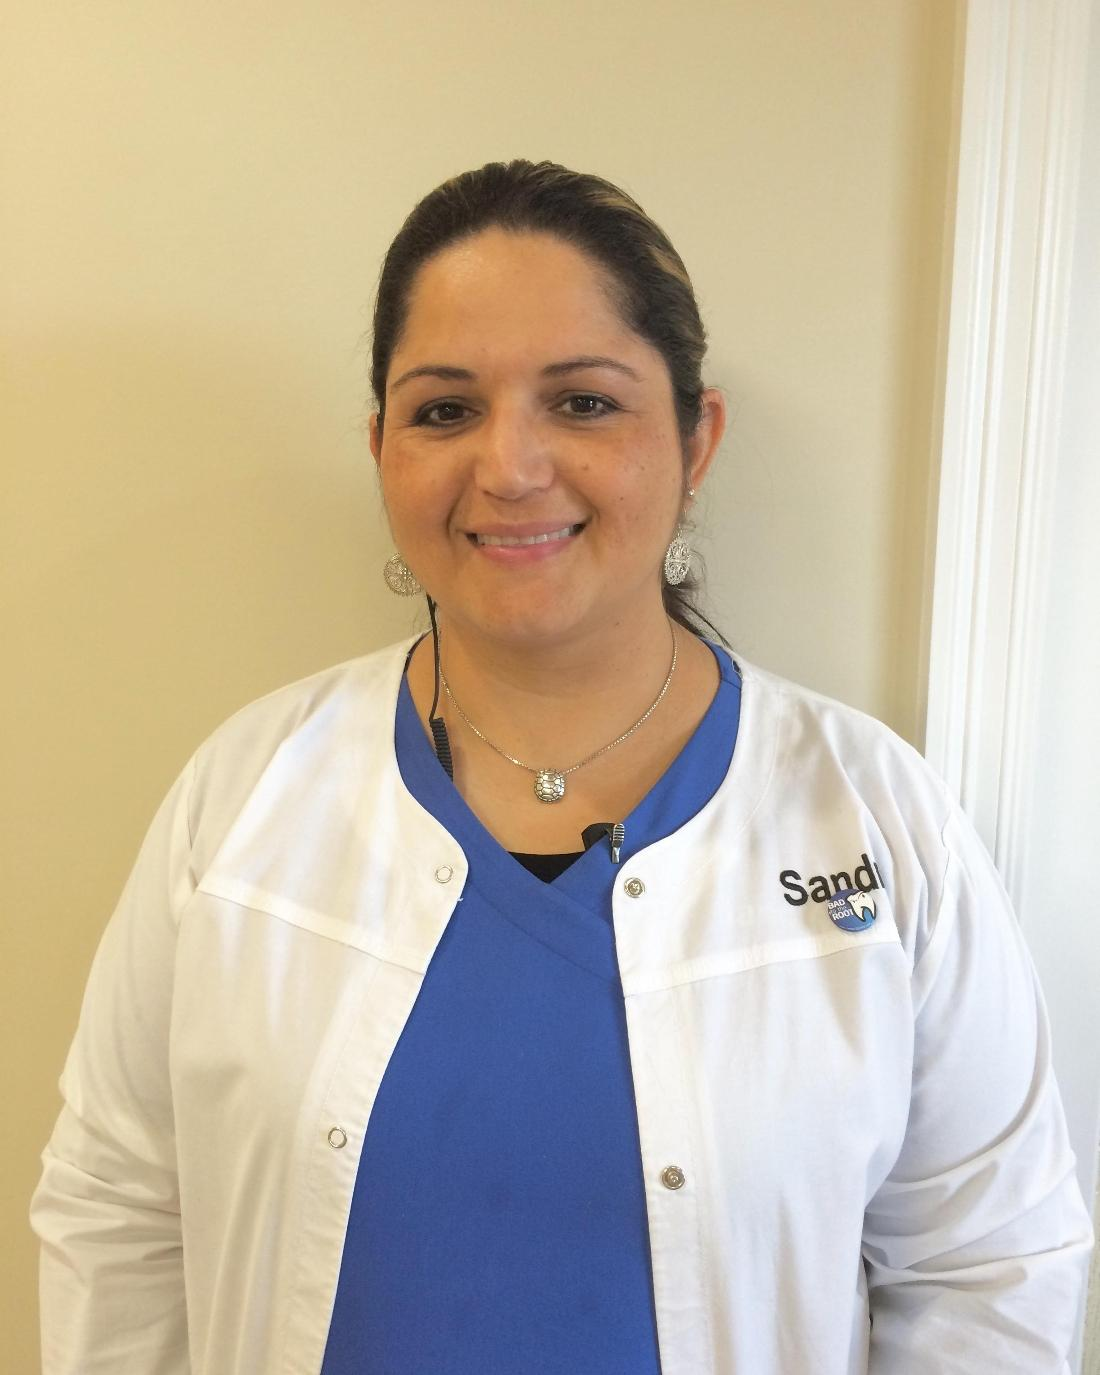 Sandra - Head Dental Assistant